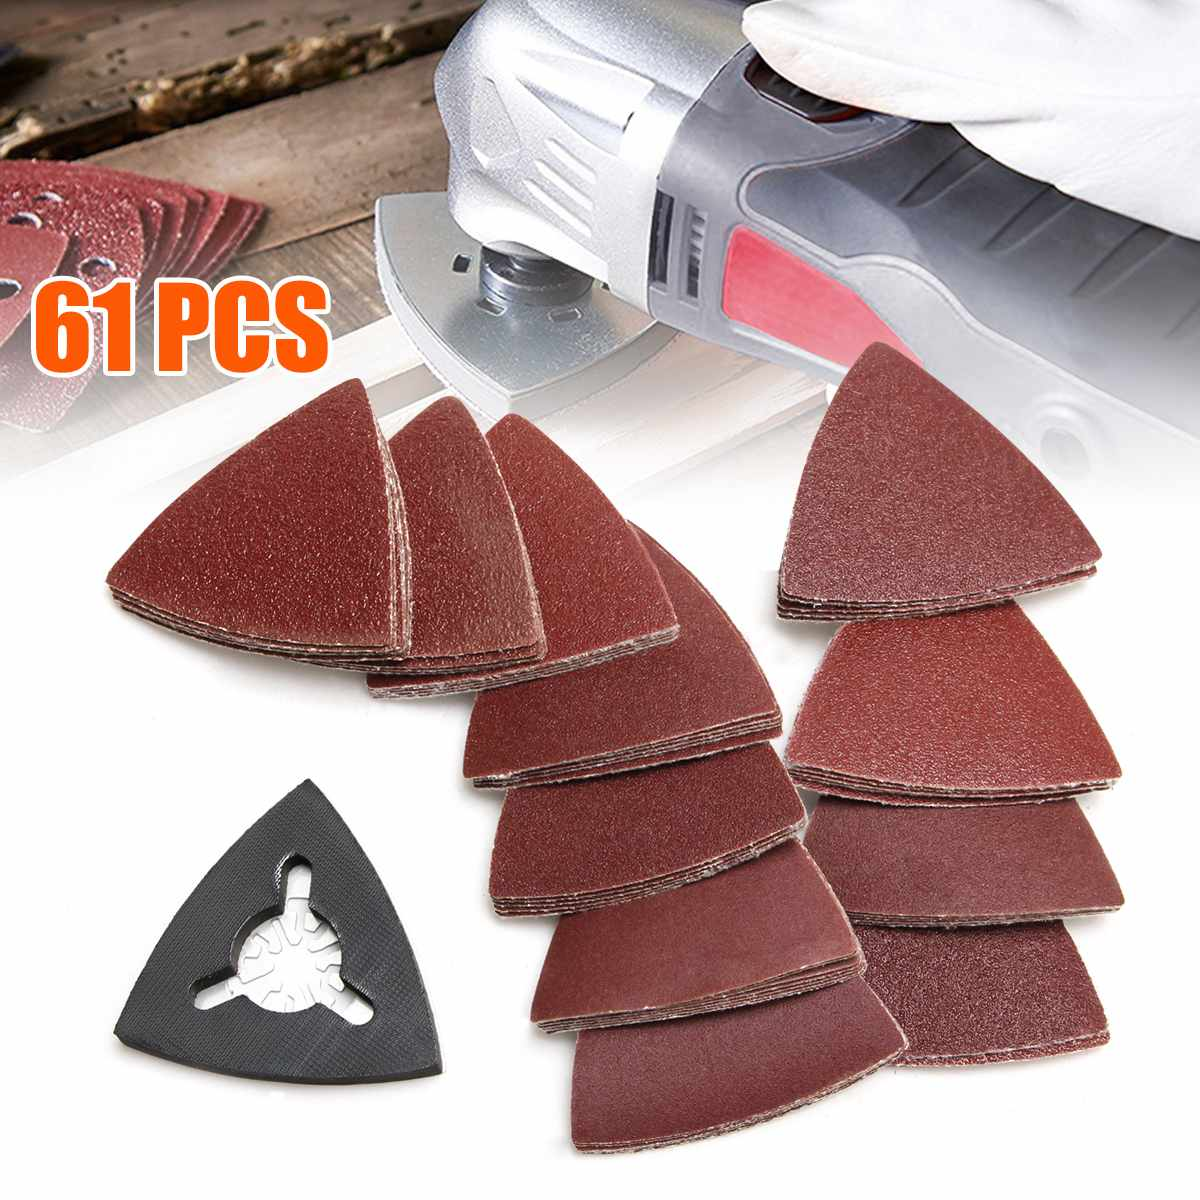 Doersupp Hot Sale 61pcs 80mm 40/60/80/120/180 Grit Triangular Sand Paper Set Abrasive Tools Multitool Oscillating Tools